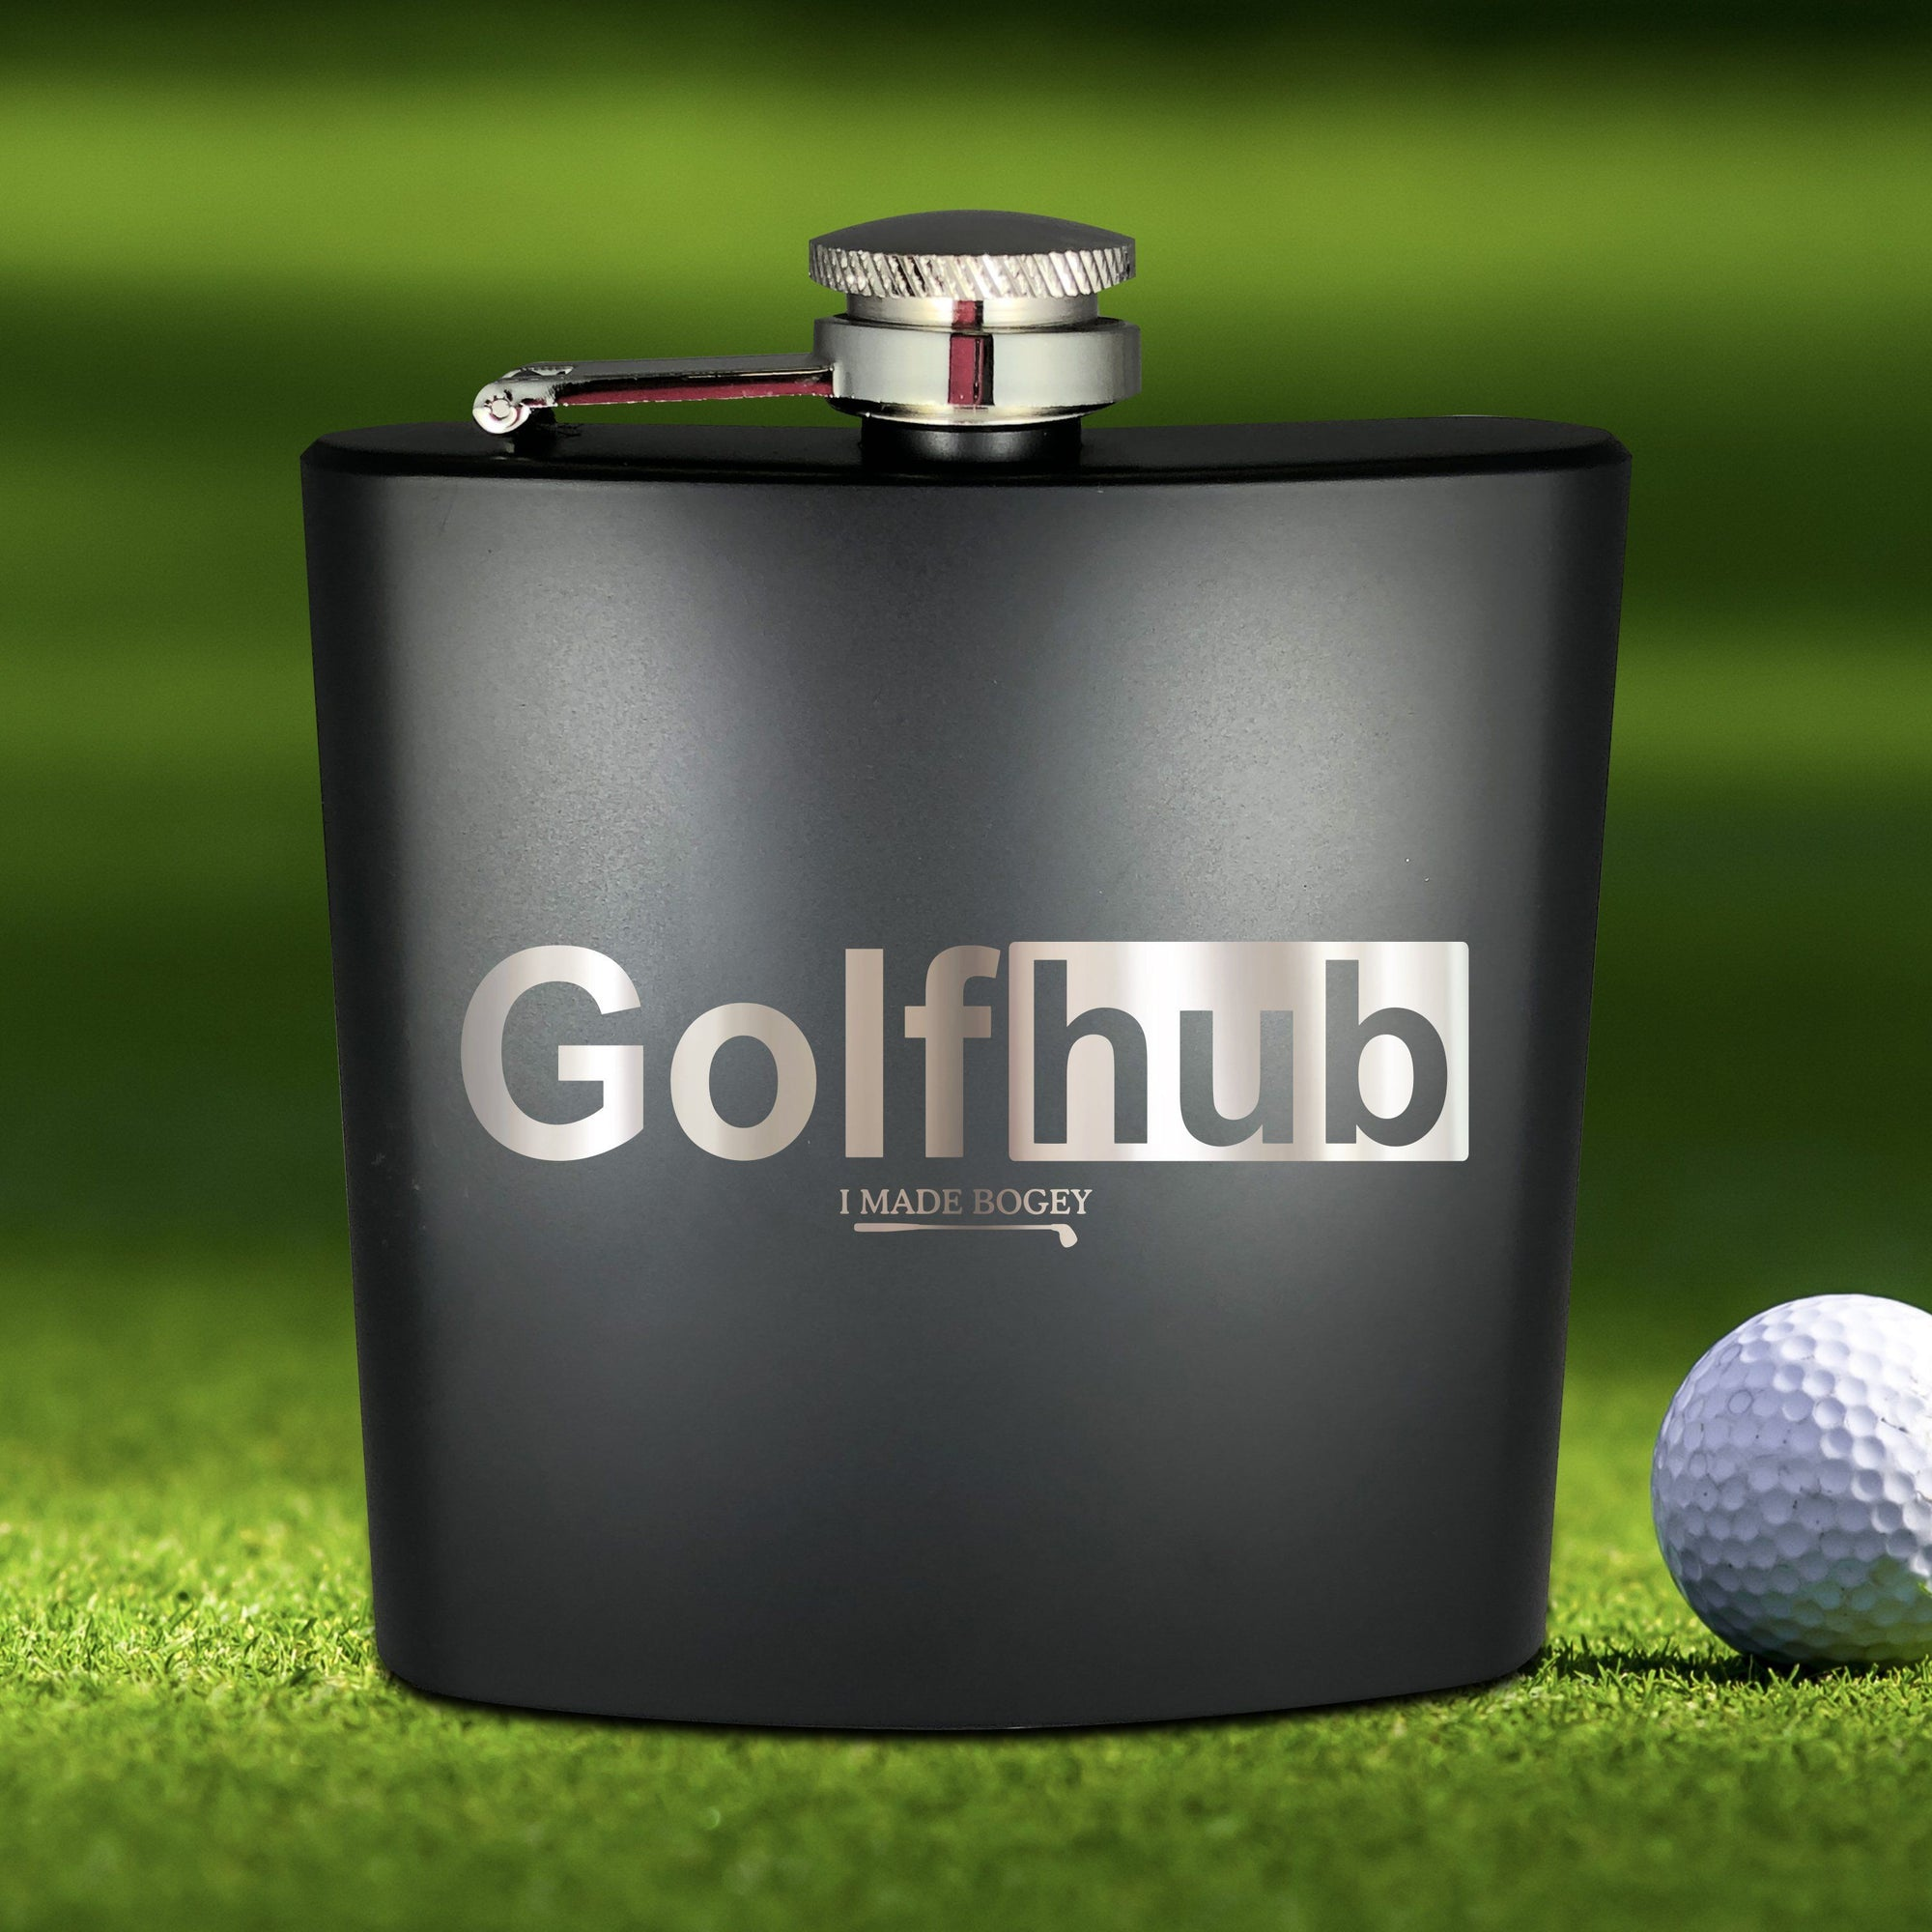 Golfhub Flask